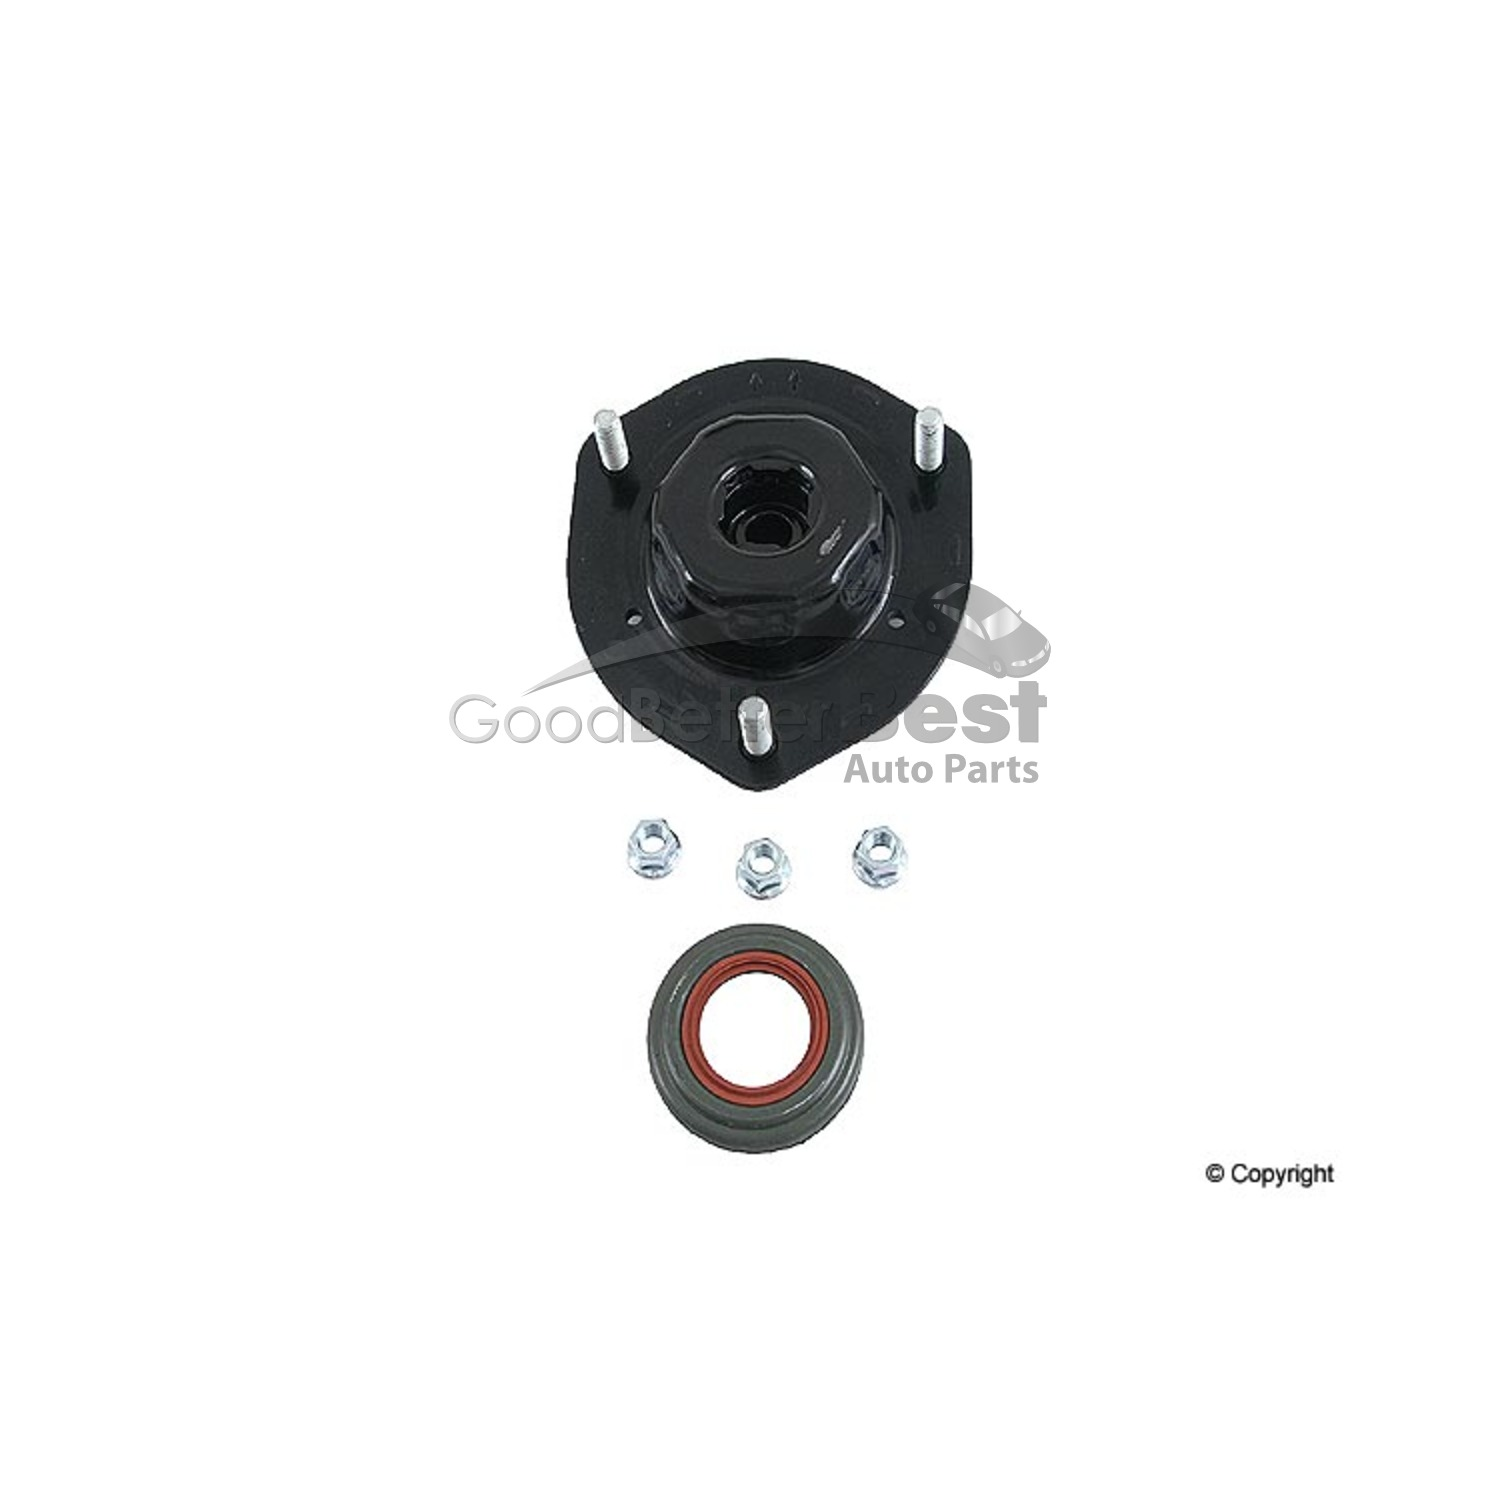 Details about New KYB Suspension Strut Mount Front SM5423 for Lexus Toyota